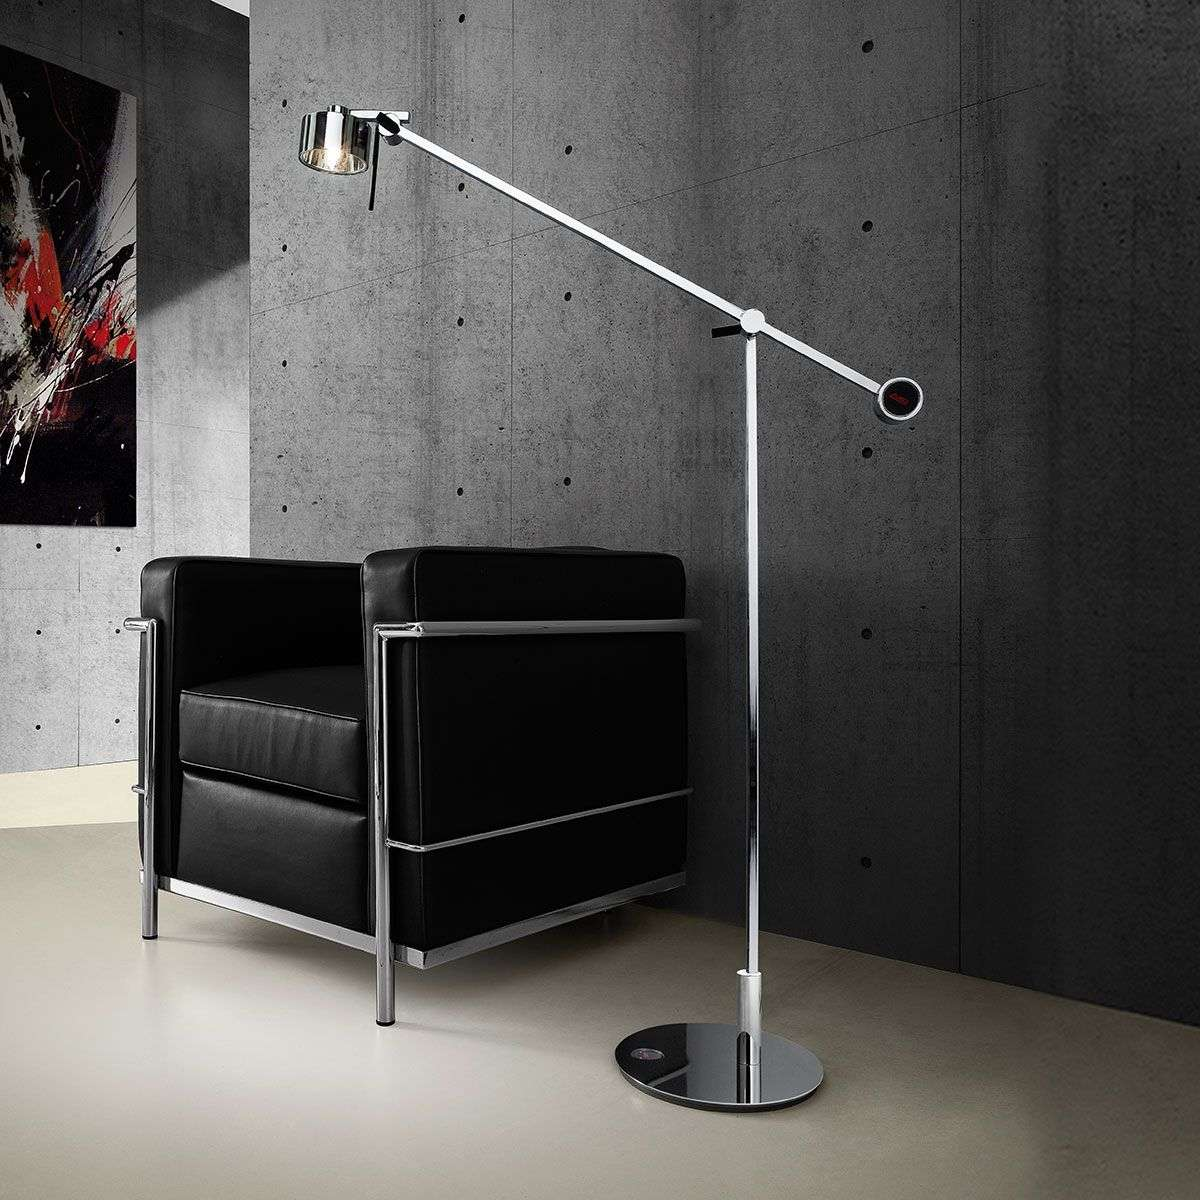 Chrome-plated floor lamp AX20 with dimmer-1088036-31